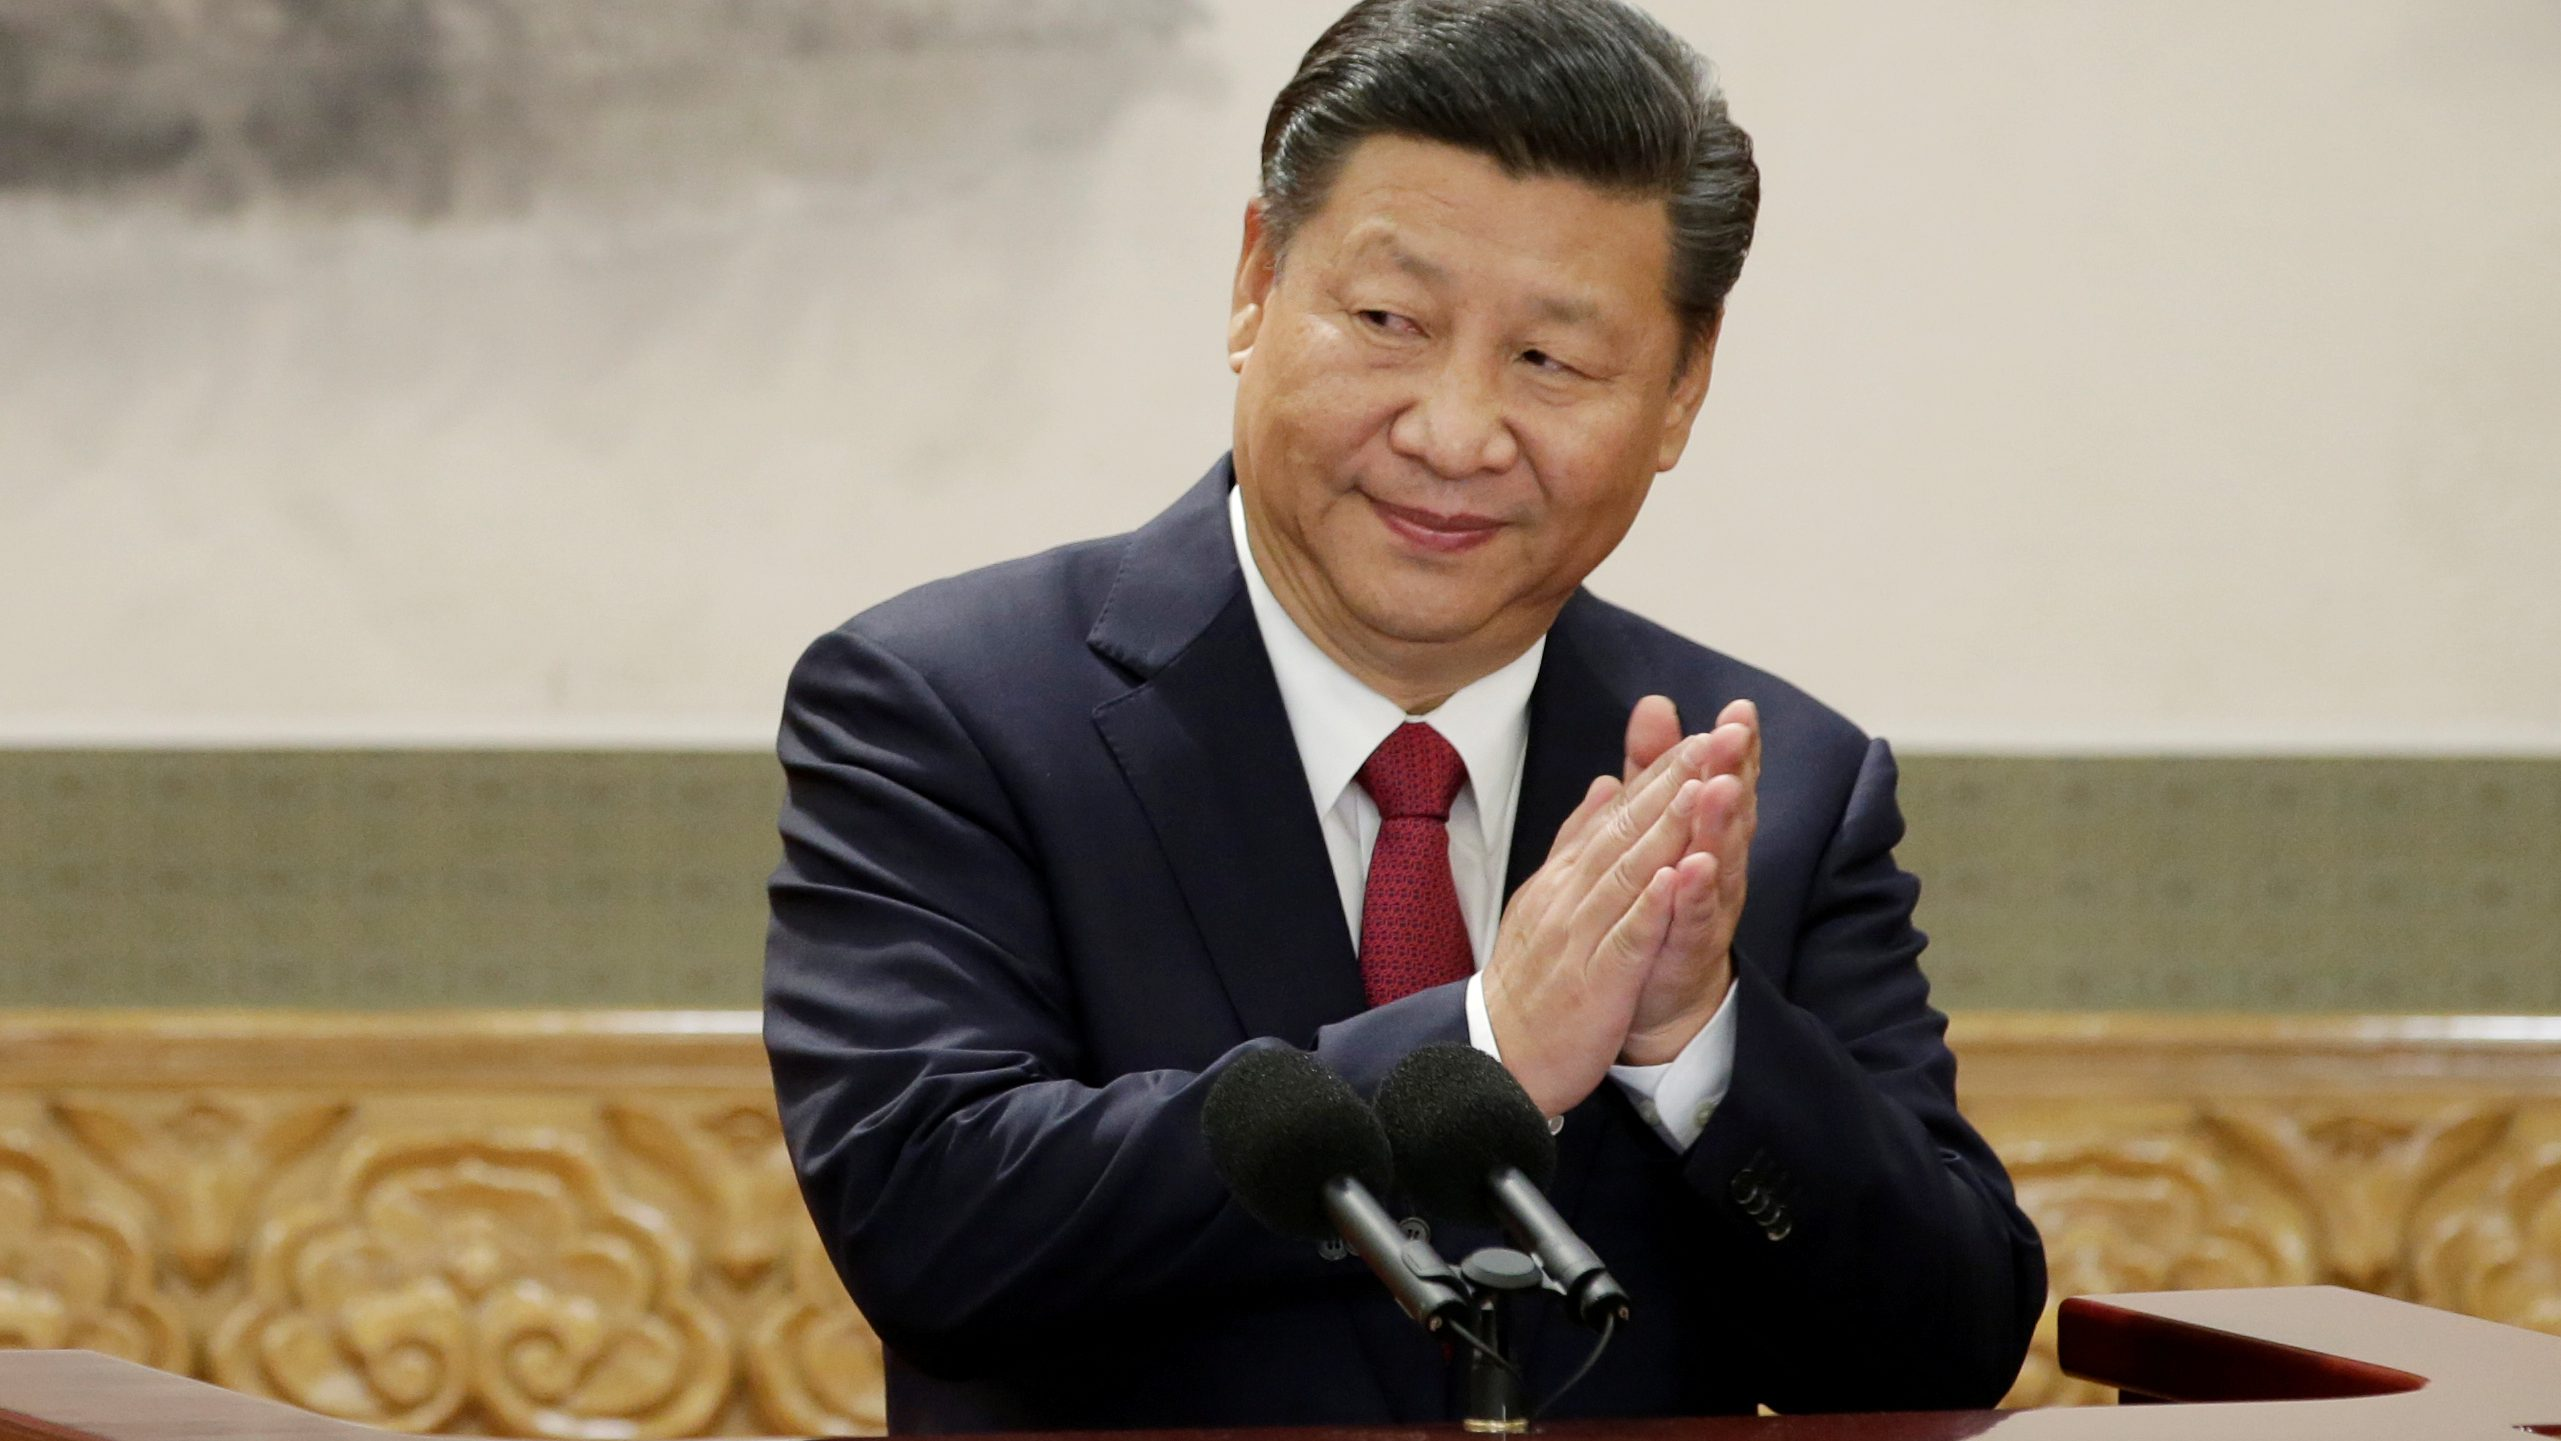 China's President Xi Jinping claps after his speech as he and other new Politburo Standing Committee members meet with the press at the Great Hall of the People in Beijing,China October 25, 2017.  REUTERS/Jason Lee     TPX IMAGES OF THE DAY - RC1CA251AF60